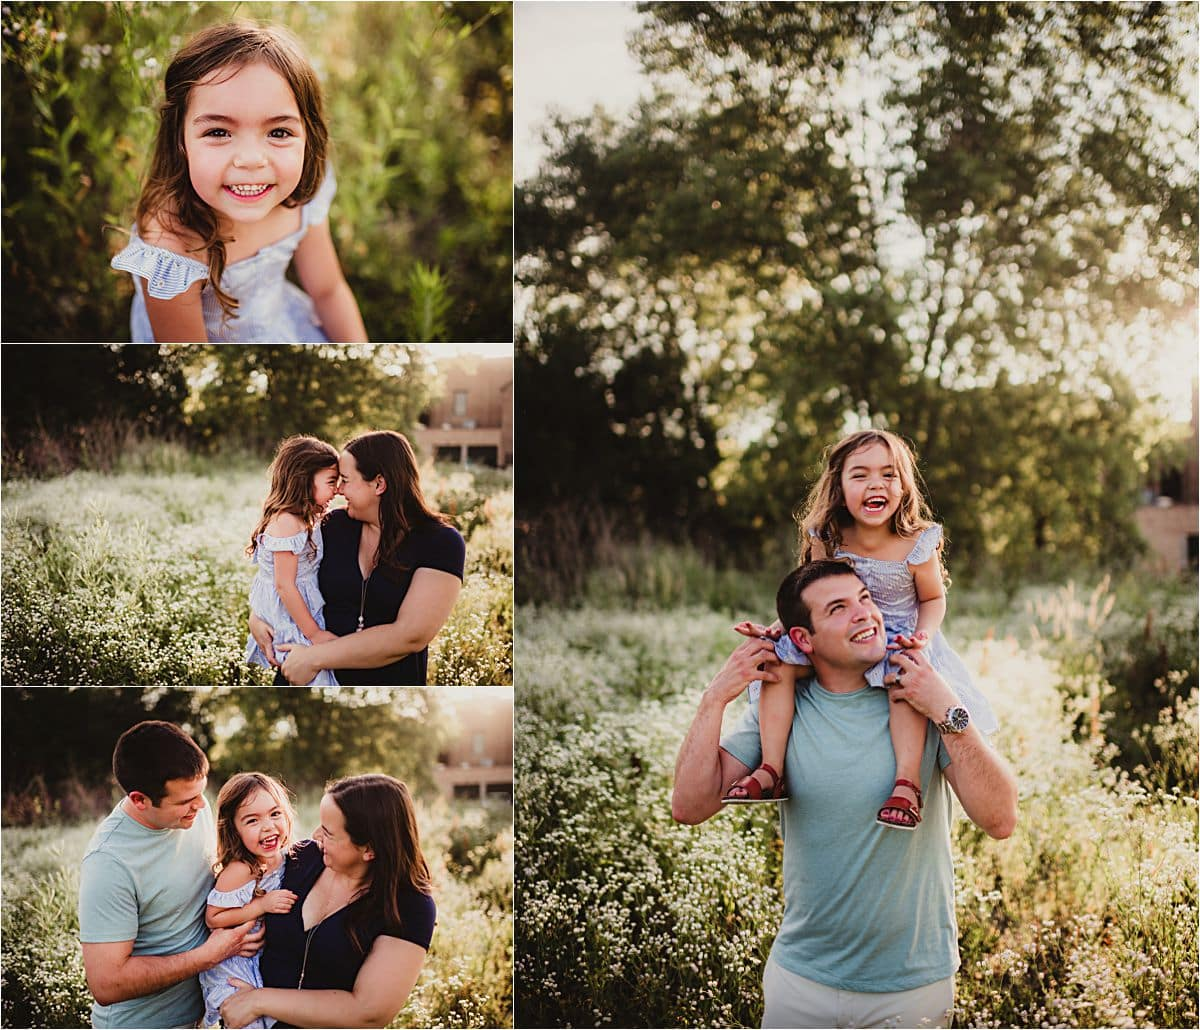 Urban Wildflower Family Maternity Session Collage Parents with Little Girl